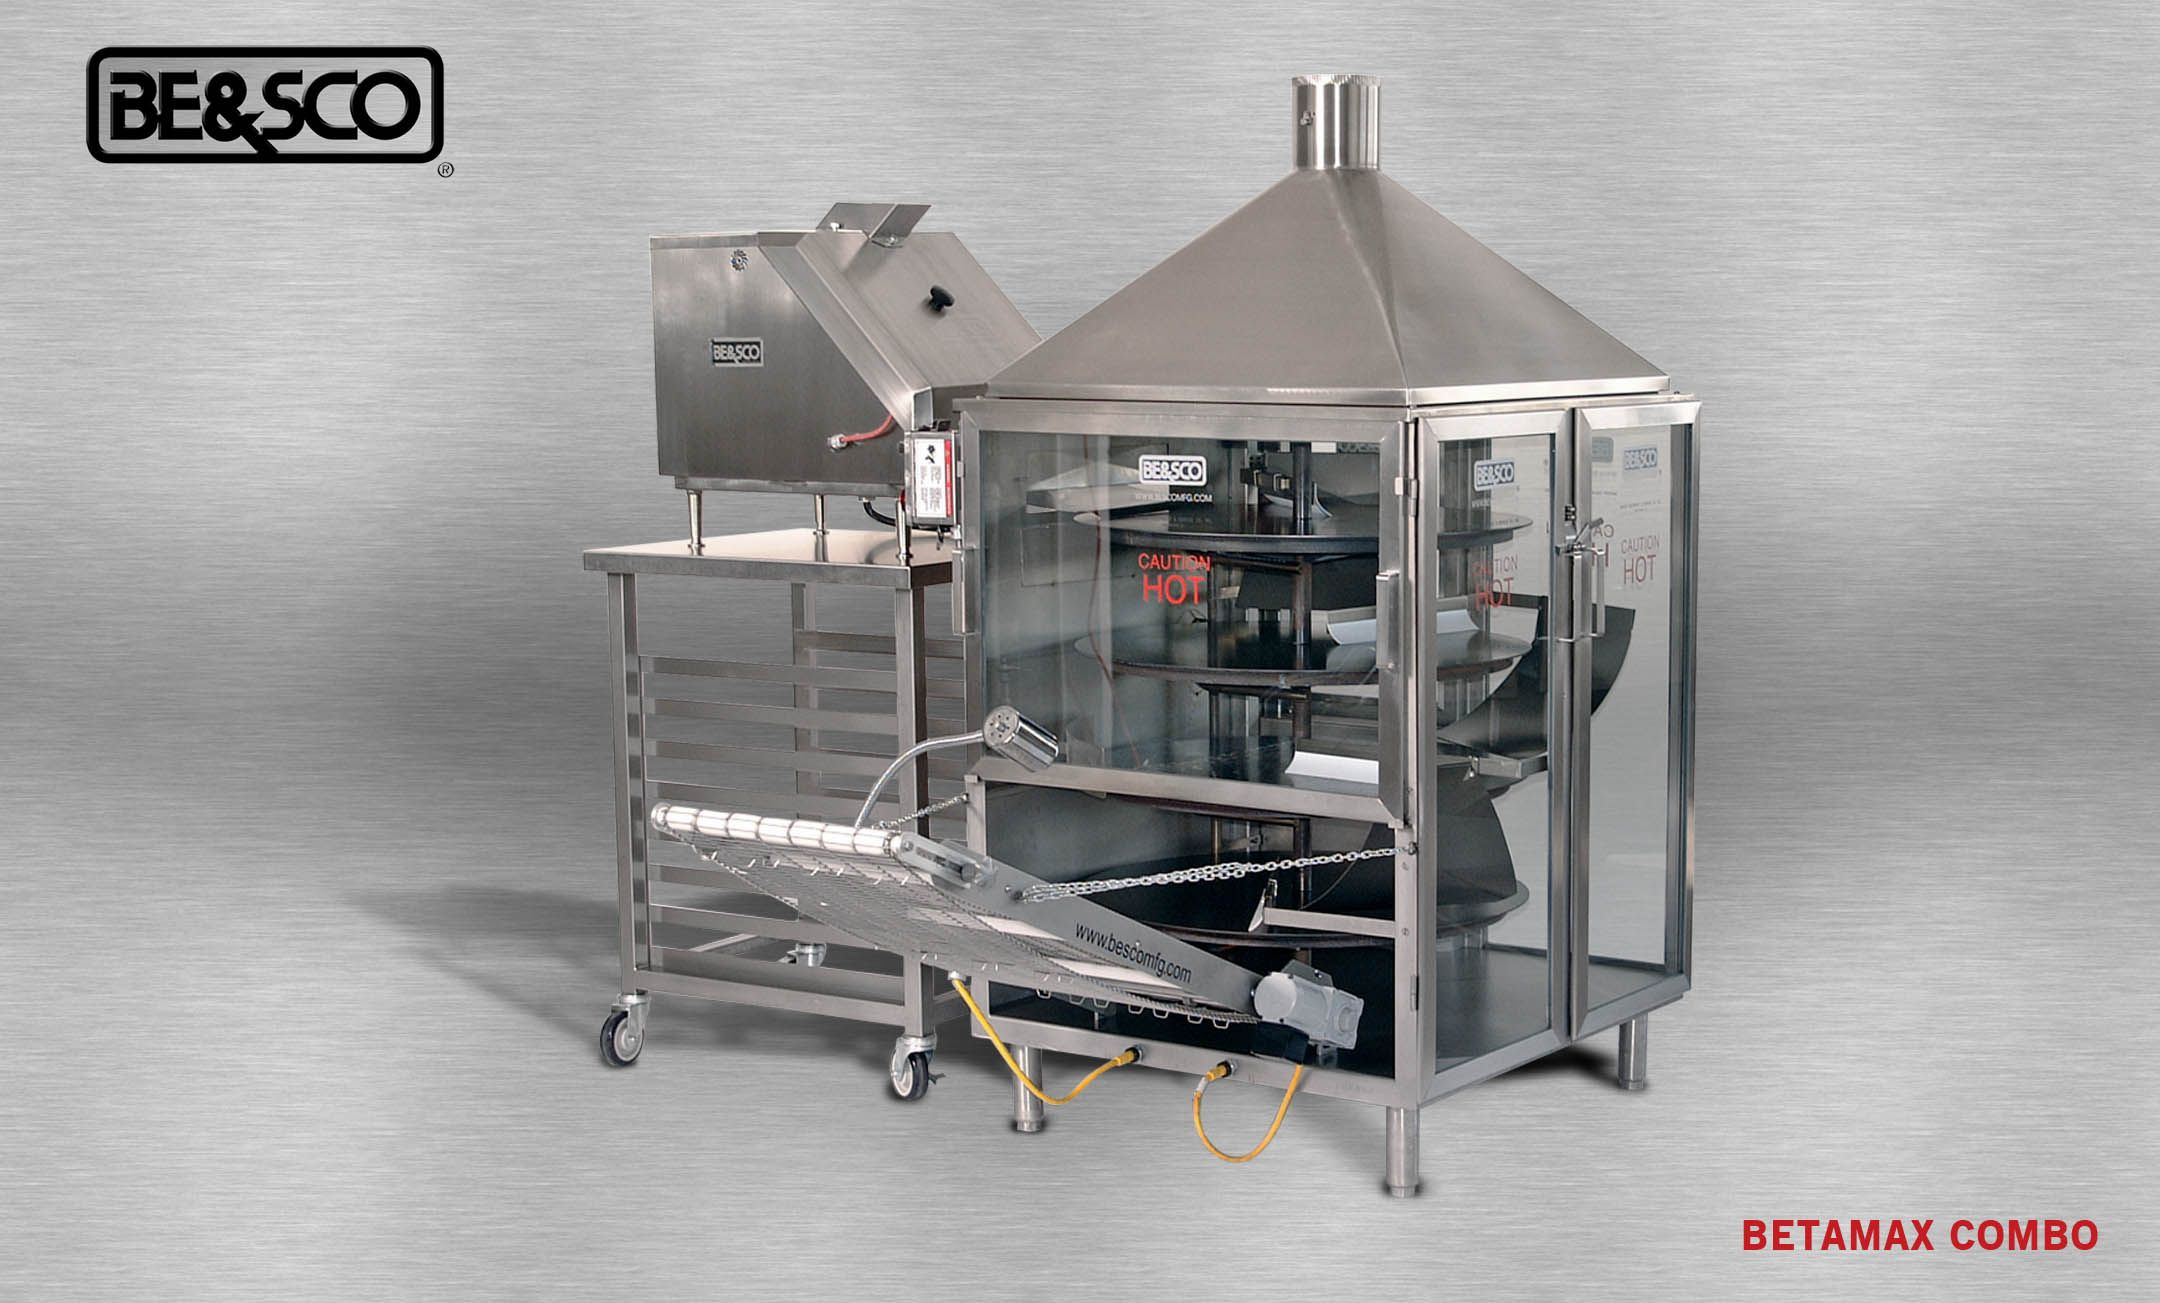 pin by be sco manufacturing on be sco tortilla ovens flour